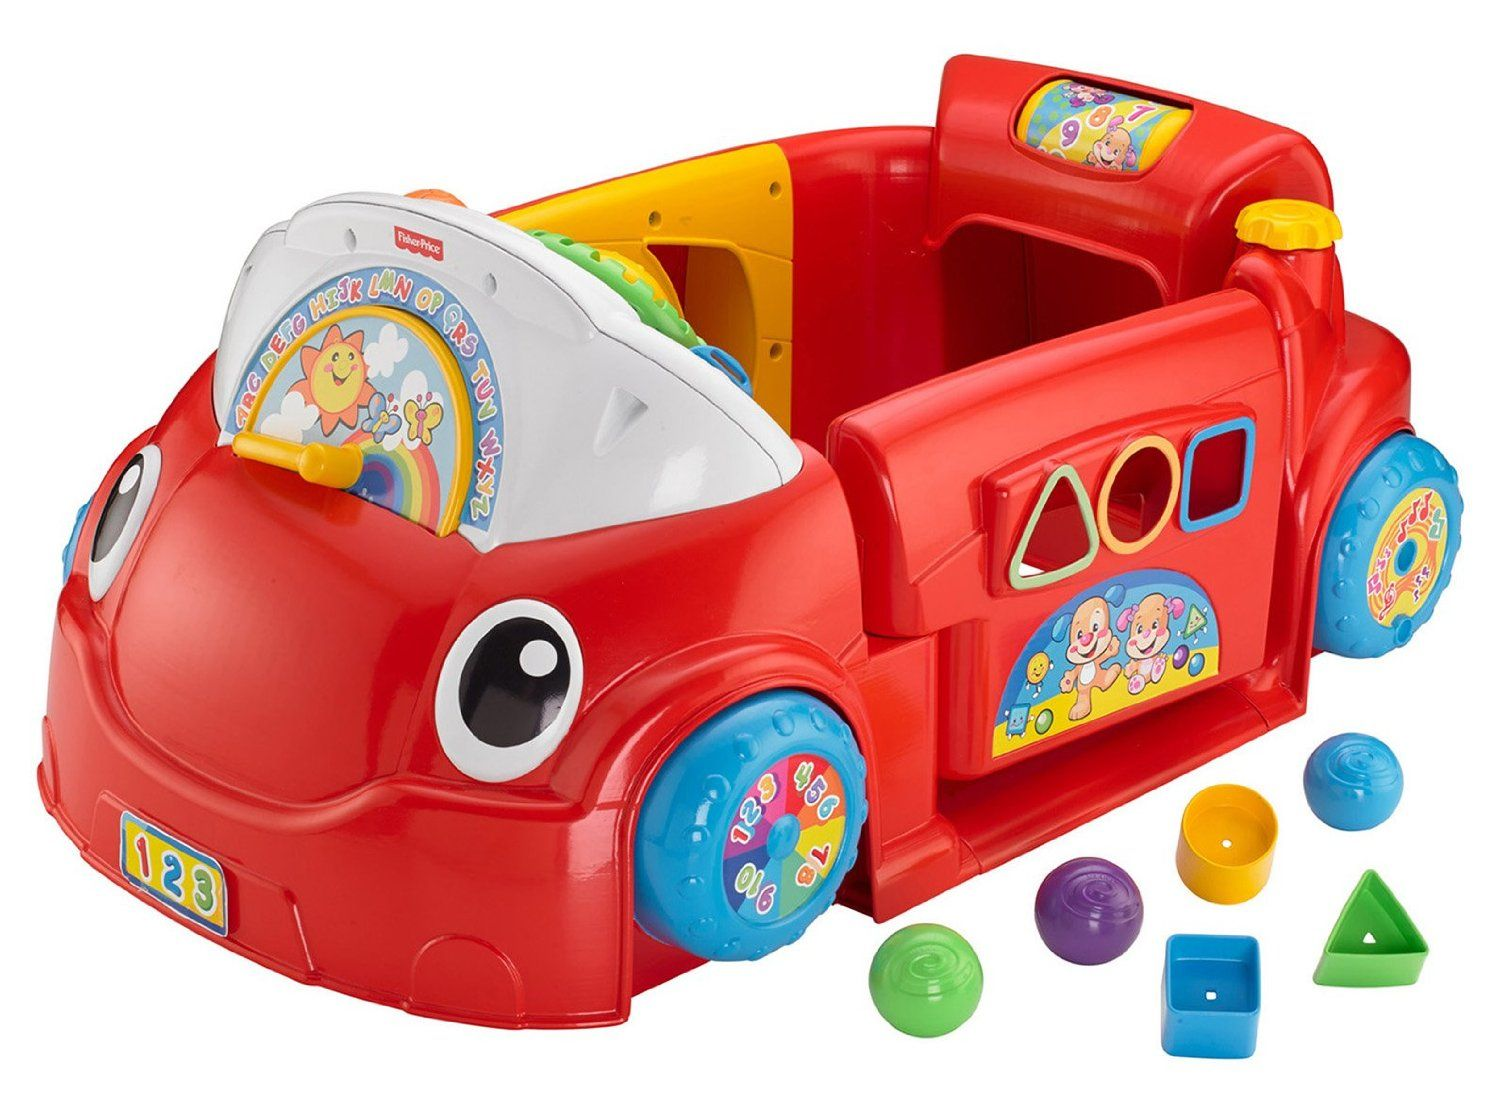 Cool car toys  FisherPrice Laugh and Learn Crawl Around Car  See more at